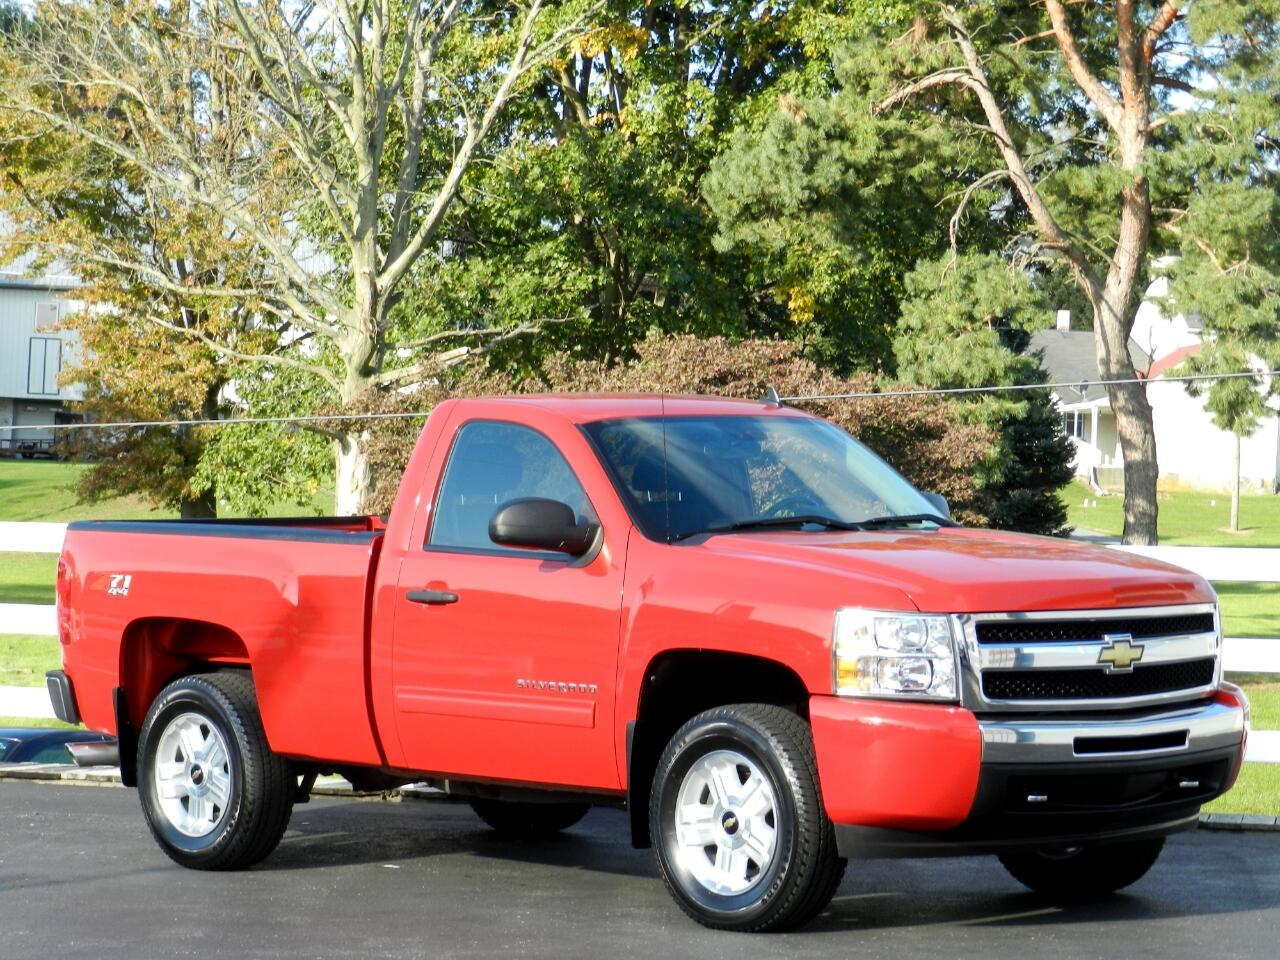 2011 Chevrolet Silverado 1500 Z71 Regular Cab Short Bed 4WD